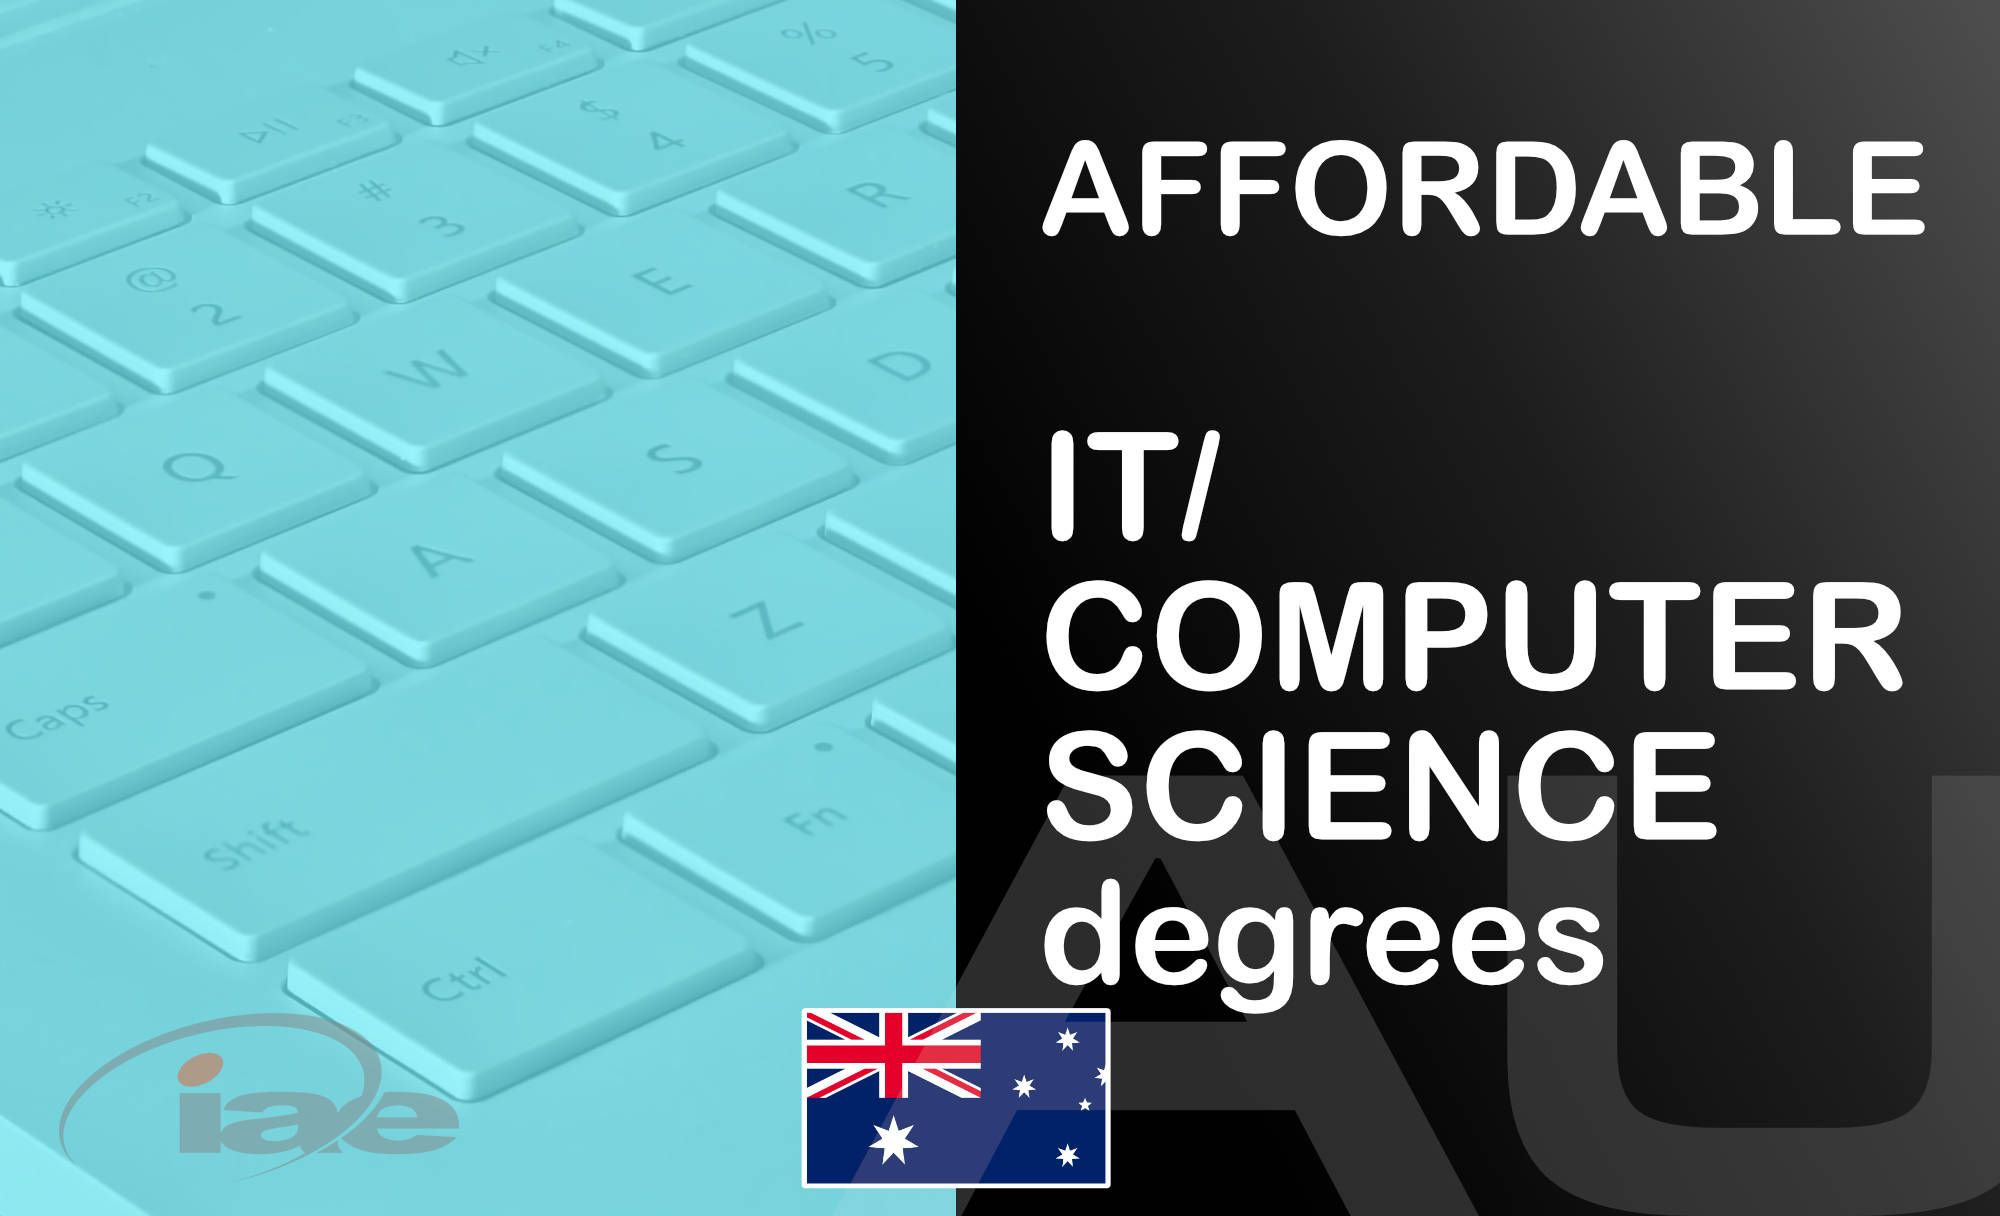 🇦🇺 Top 5 most affordable BIT/Bachelors in Computer Science degrees in Australia